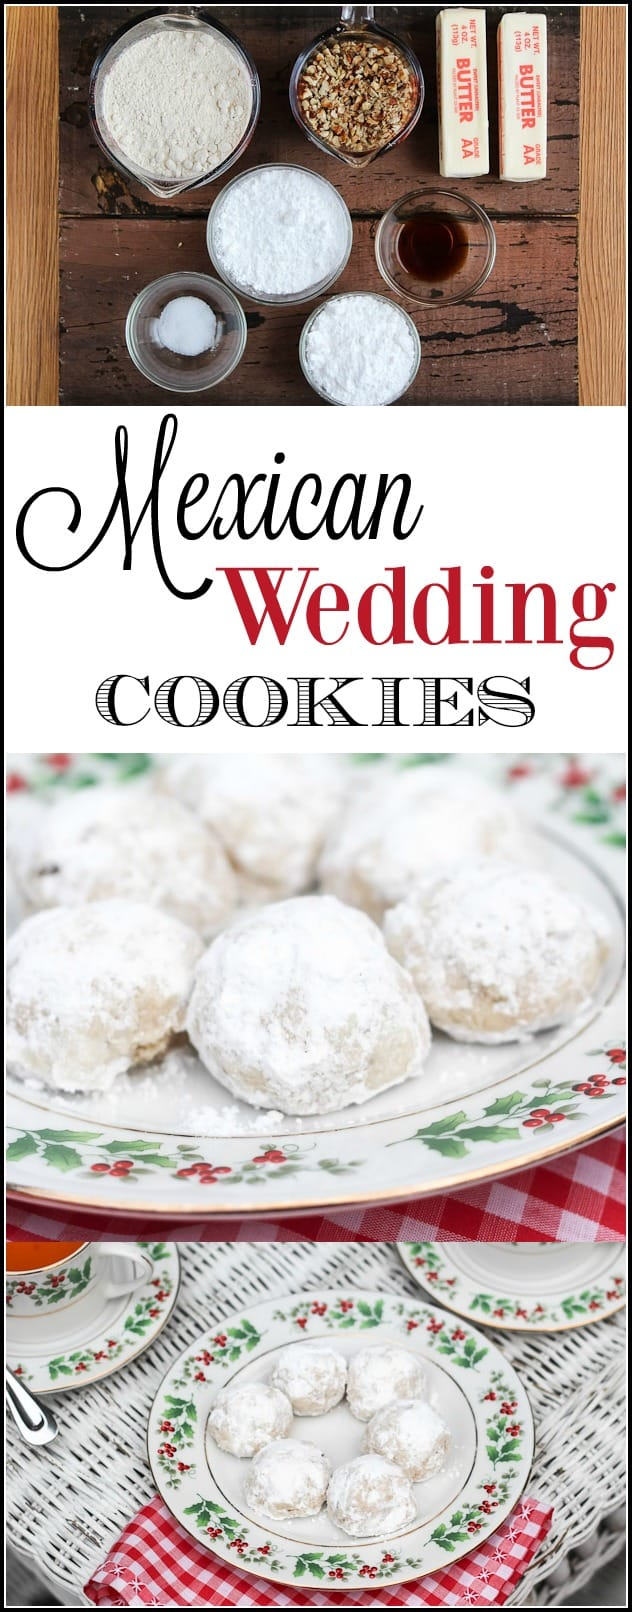 Mexican wedding cookies (or Russian tea cakes as they are sometimes called) are known for their irresistibly nutty taste and powdered sugar topping on their rounded snowball shape.